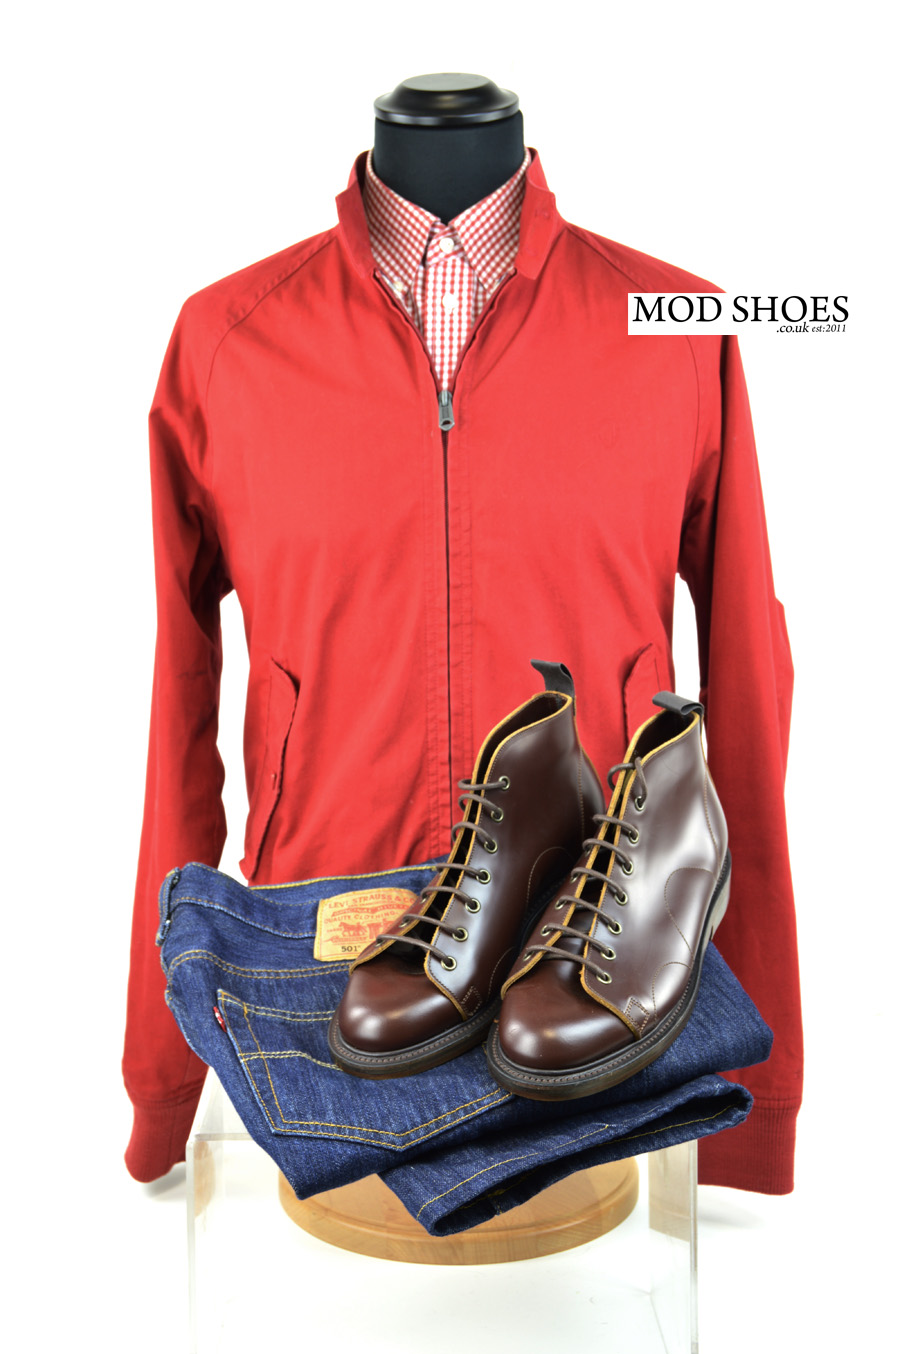 modshoes nut brown monkey boots with red harrington